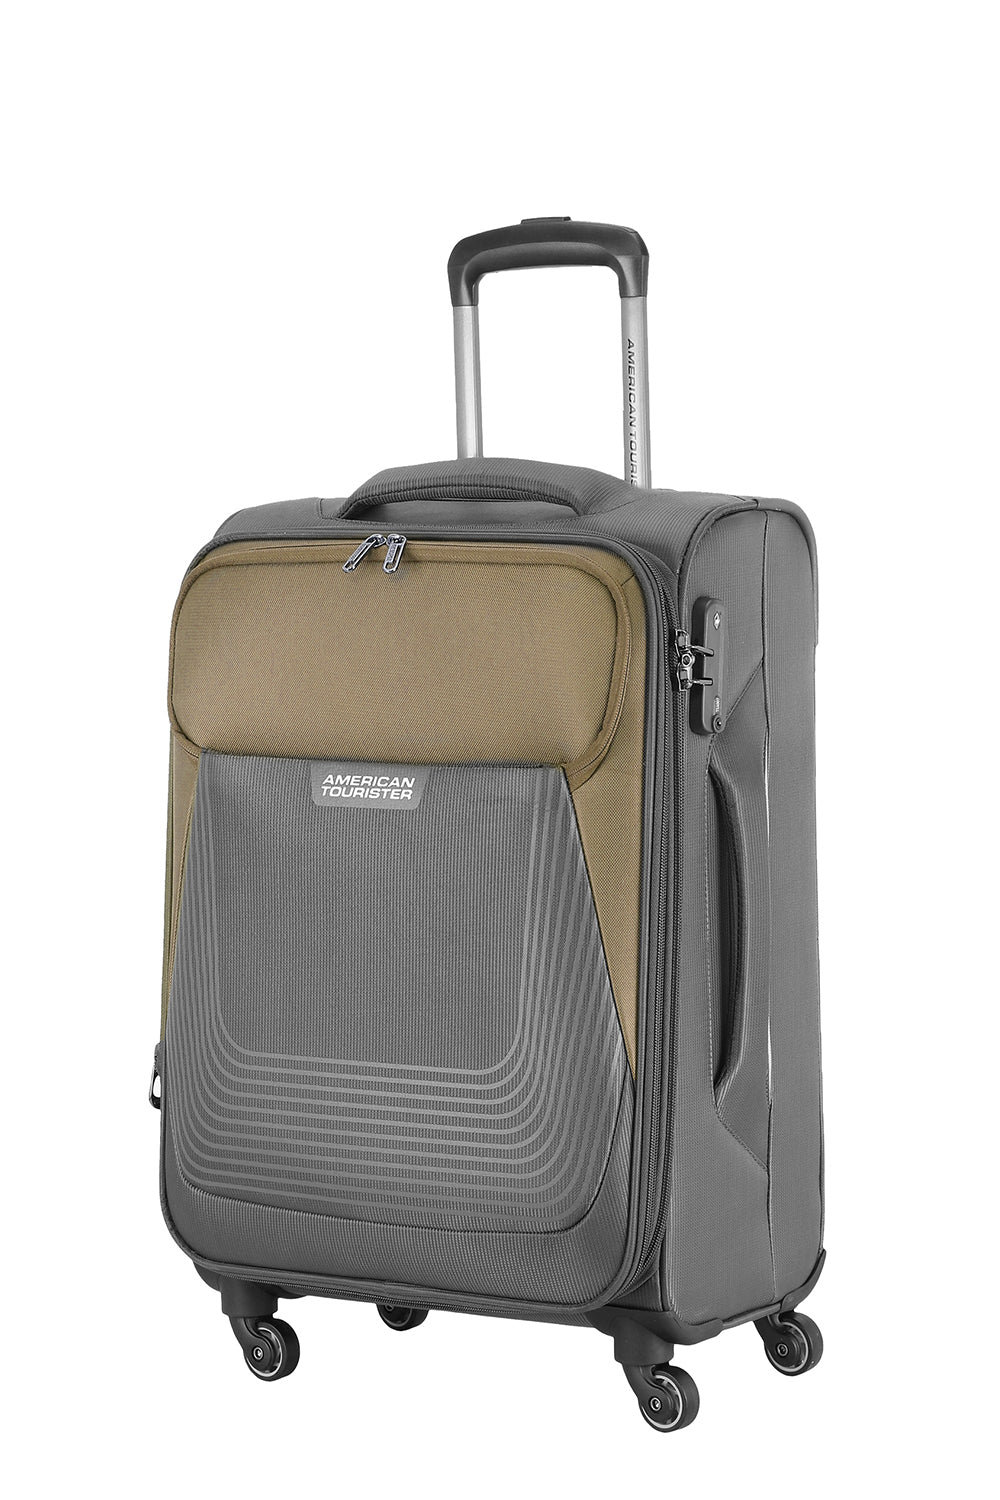 AMERICAN TOURISTER SOUTHSIDE SPINNER SOFT LUGGAGE (GREY)